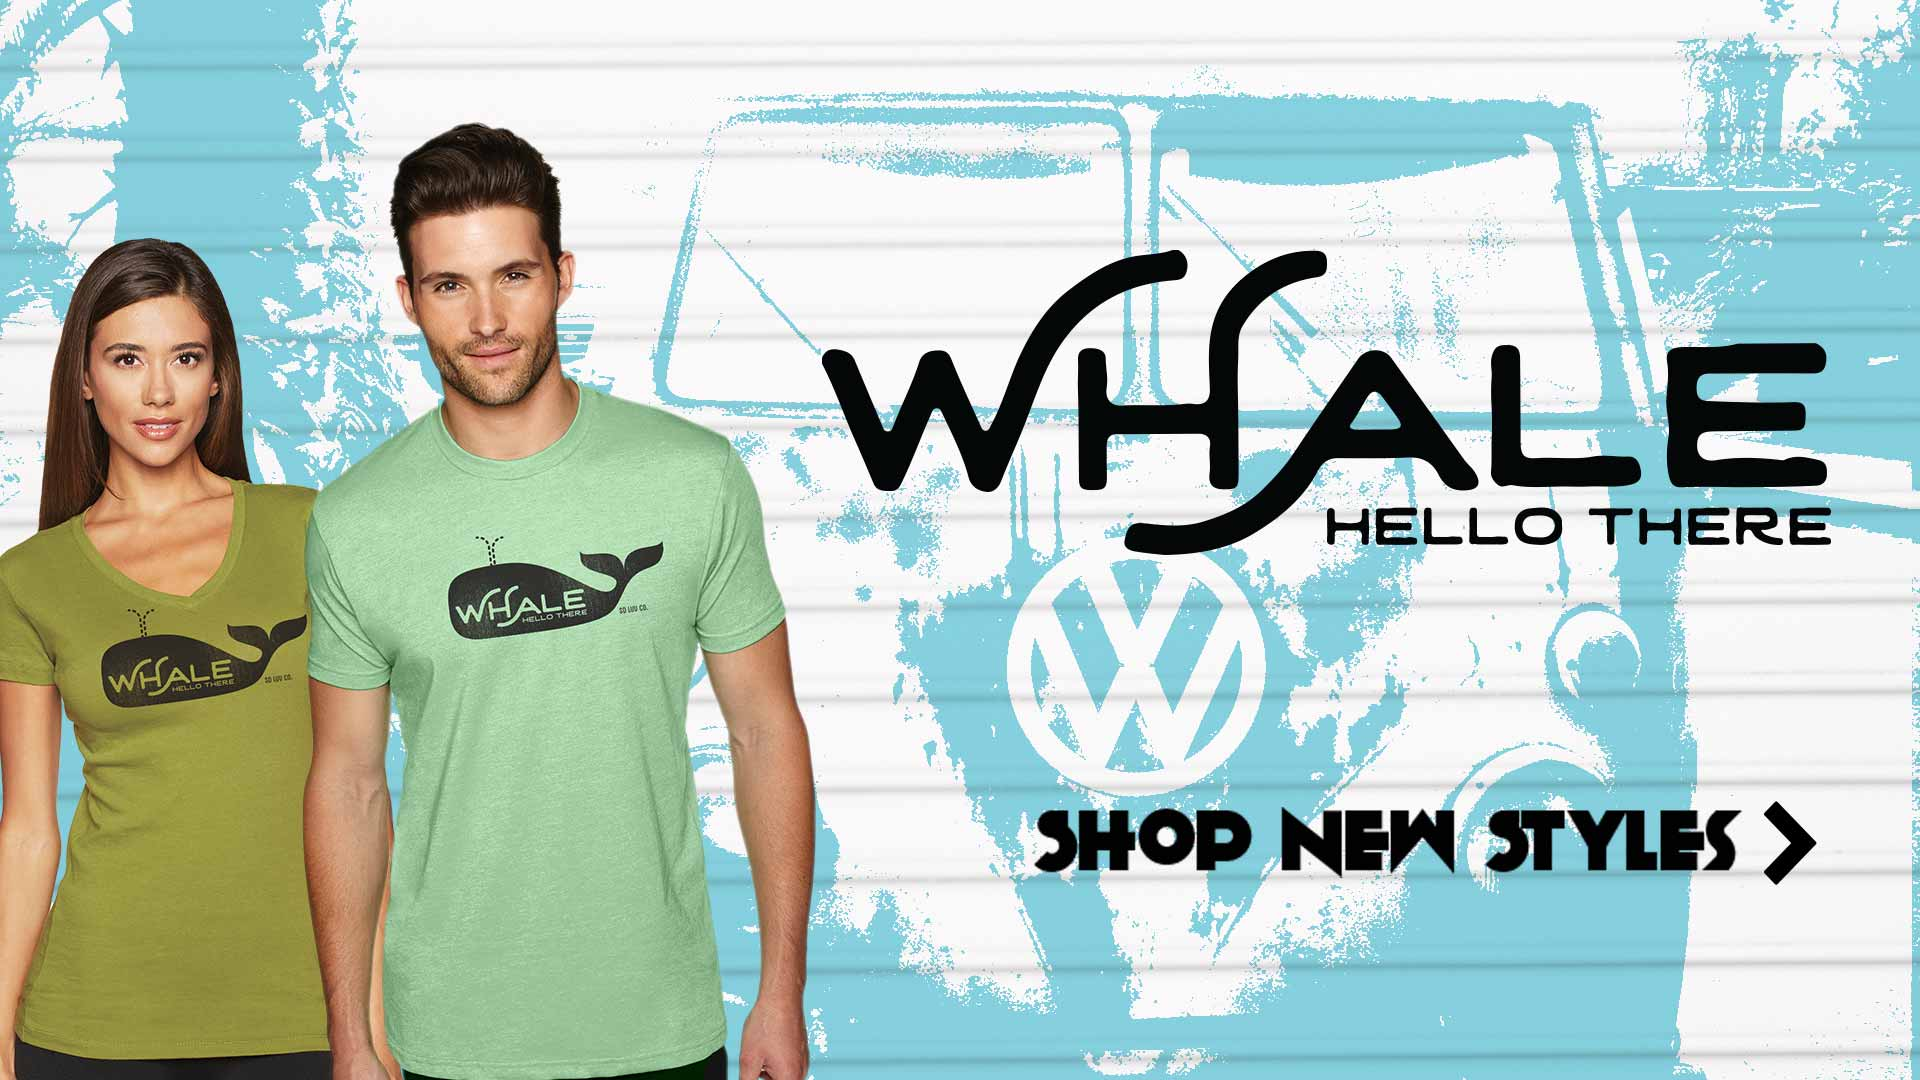 shop new styles like our whale hello design